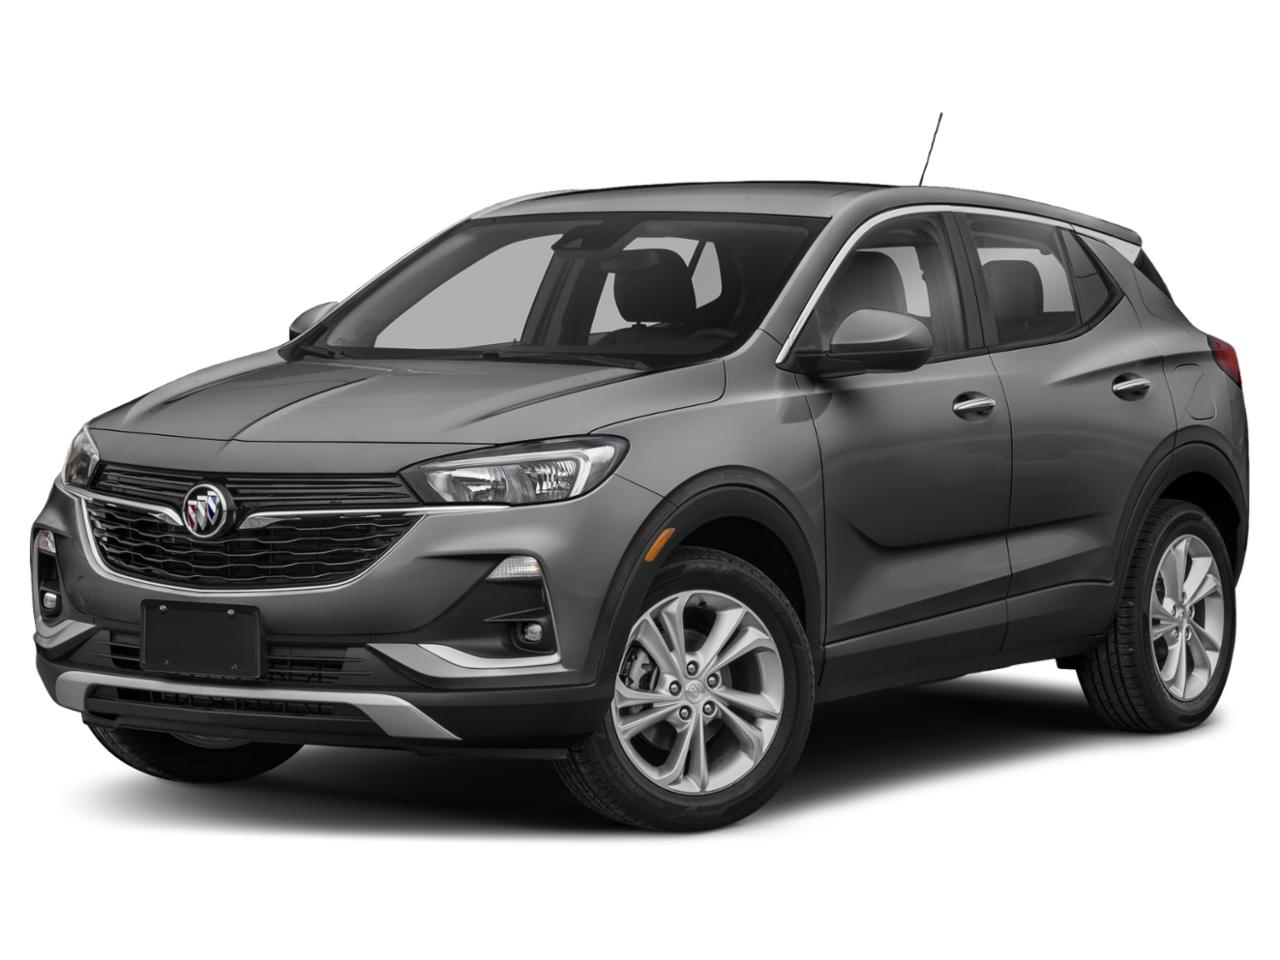 2020 Buick Encore Gx Select Fwd - Lynch Superstore In Wi New 2021 Buick Encore Gx Specs, Accessories, Awd